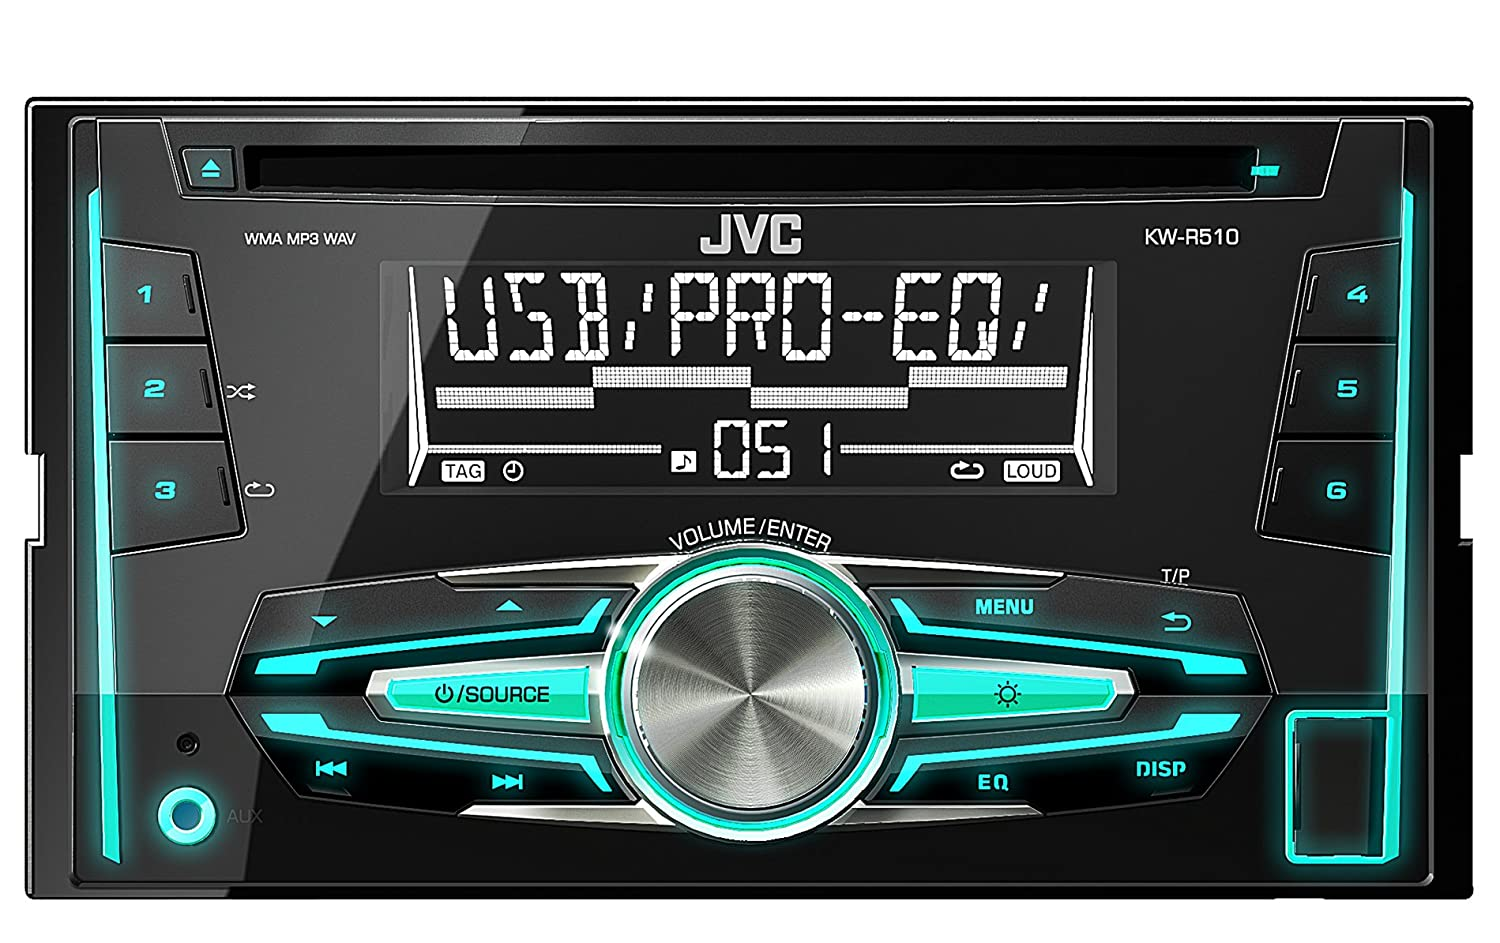 JVC KW-R510 Double Din Car Stereo with Front USB/AUX Input: Amazon.co.uk:  Electronics